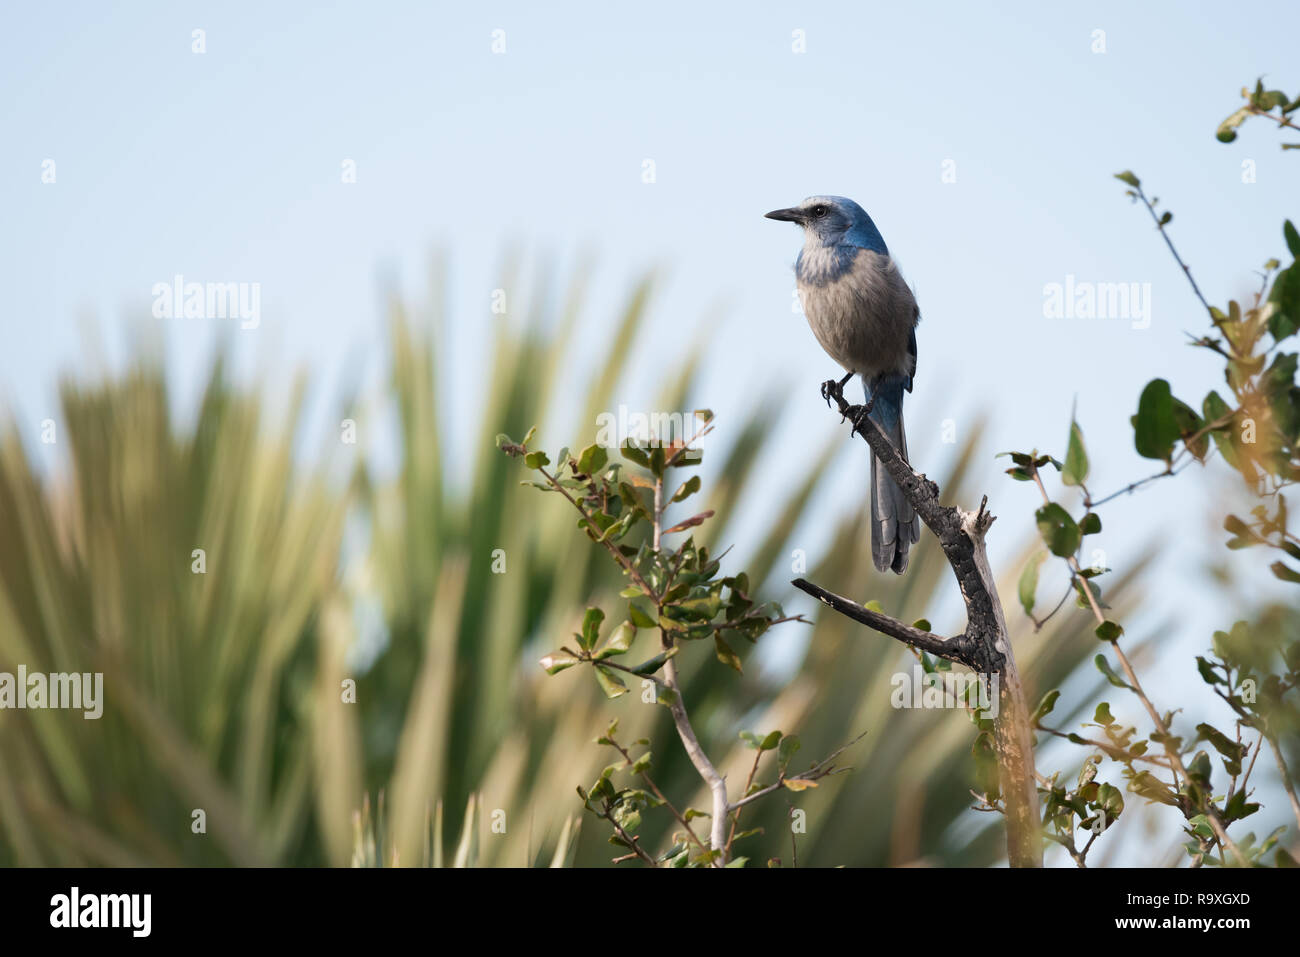 A Florida Scrub Jay, considered vulnerable to extinction due to habitat loss, perches along the side of a busy road on Merritt Island in Florida. - Stock Image